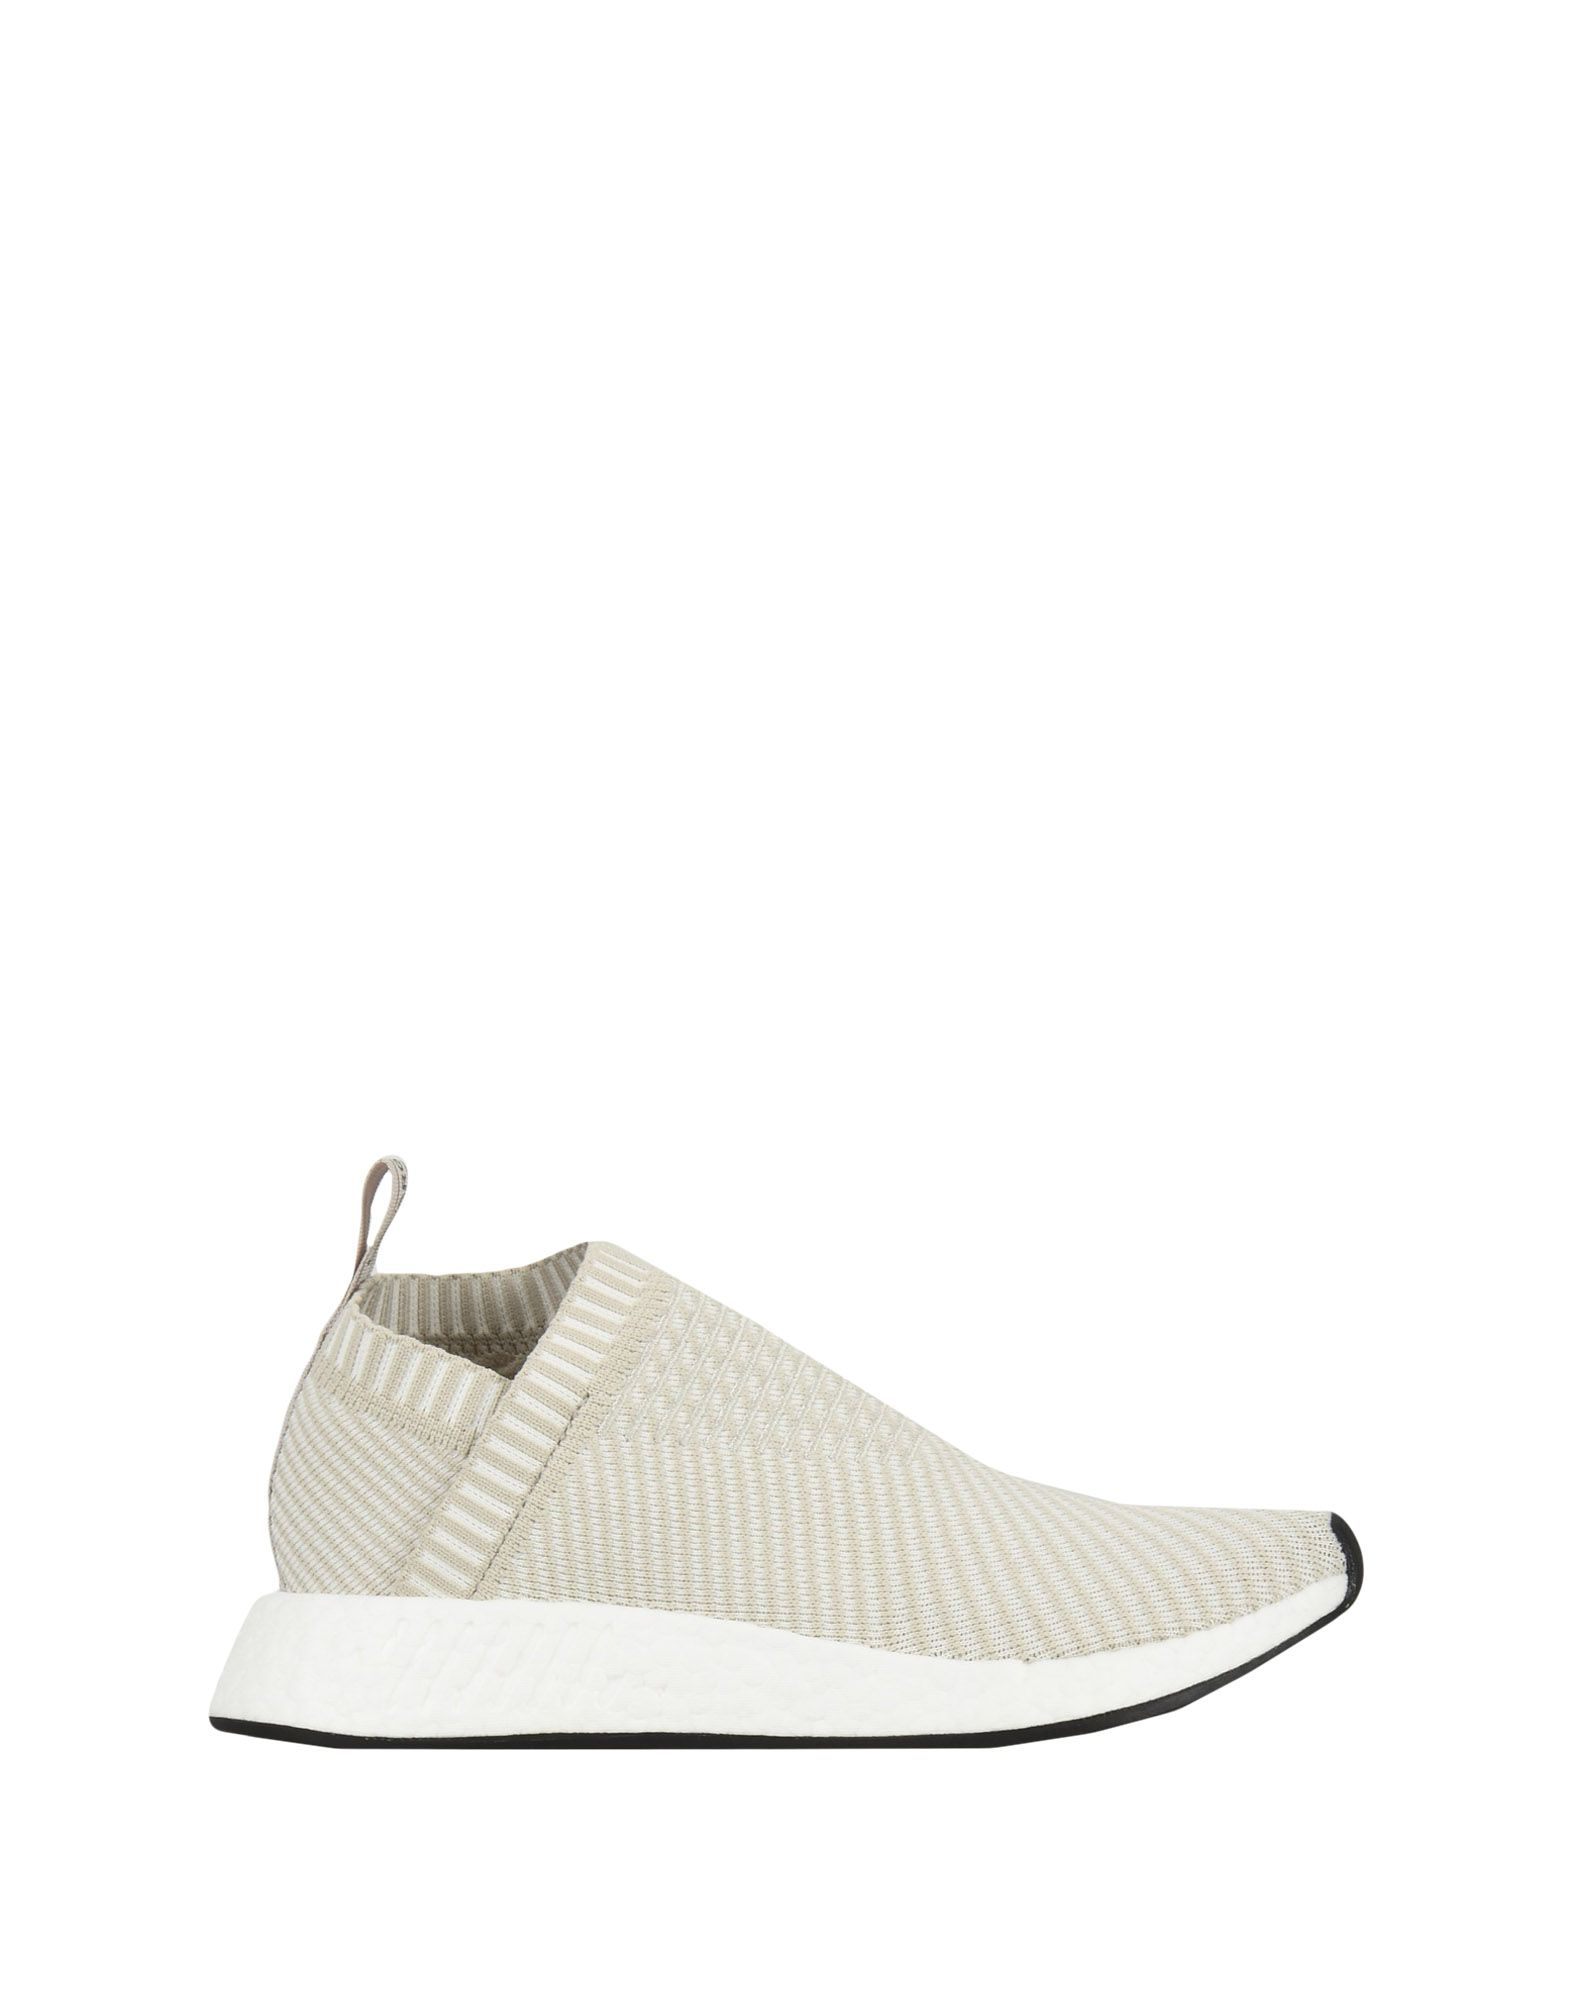 Sneakers Adidas Originals - Nmd_Cs2 Pk W - Donna - Originals 11281400VK 561322